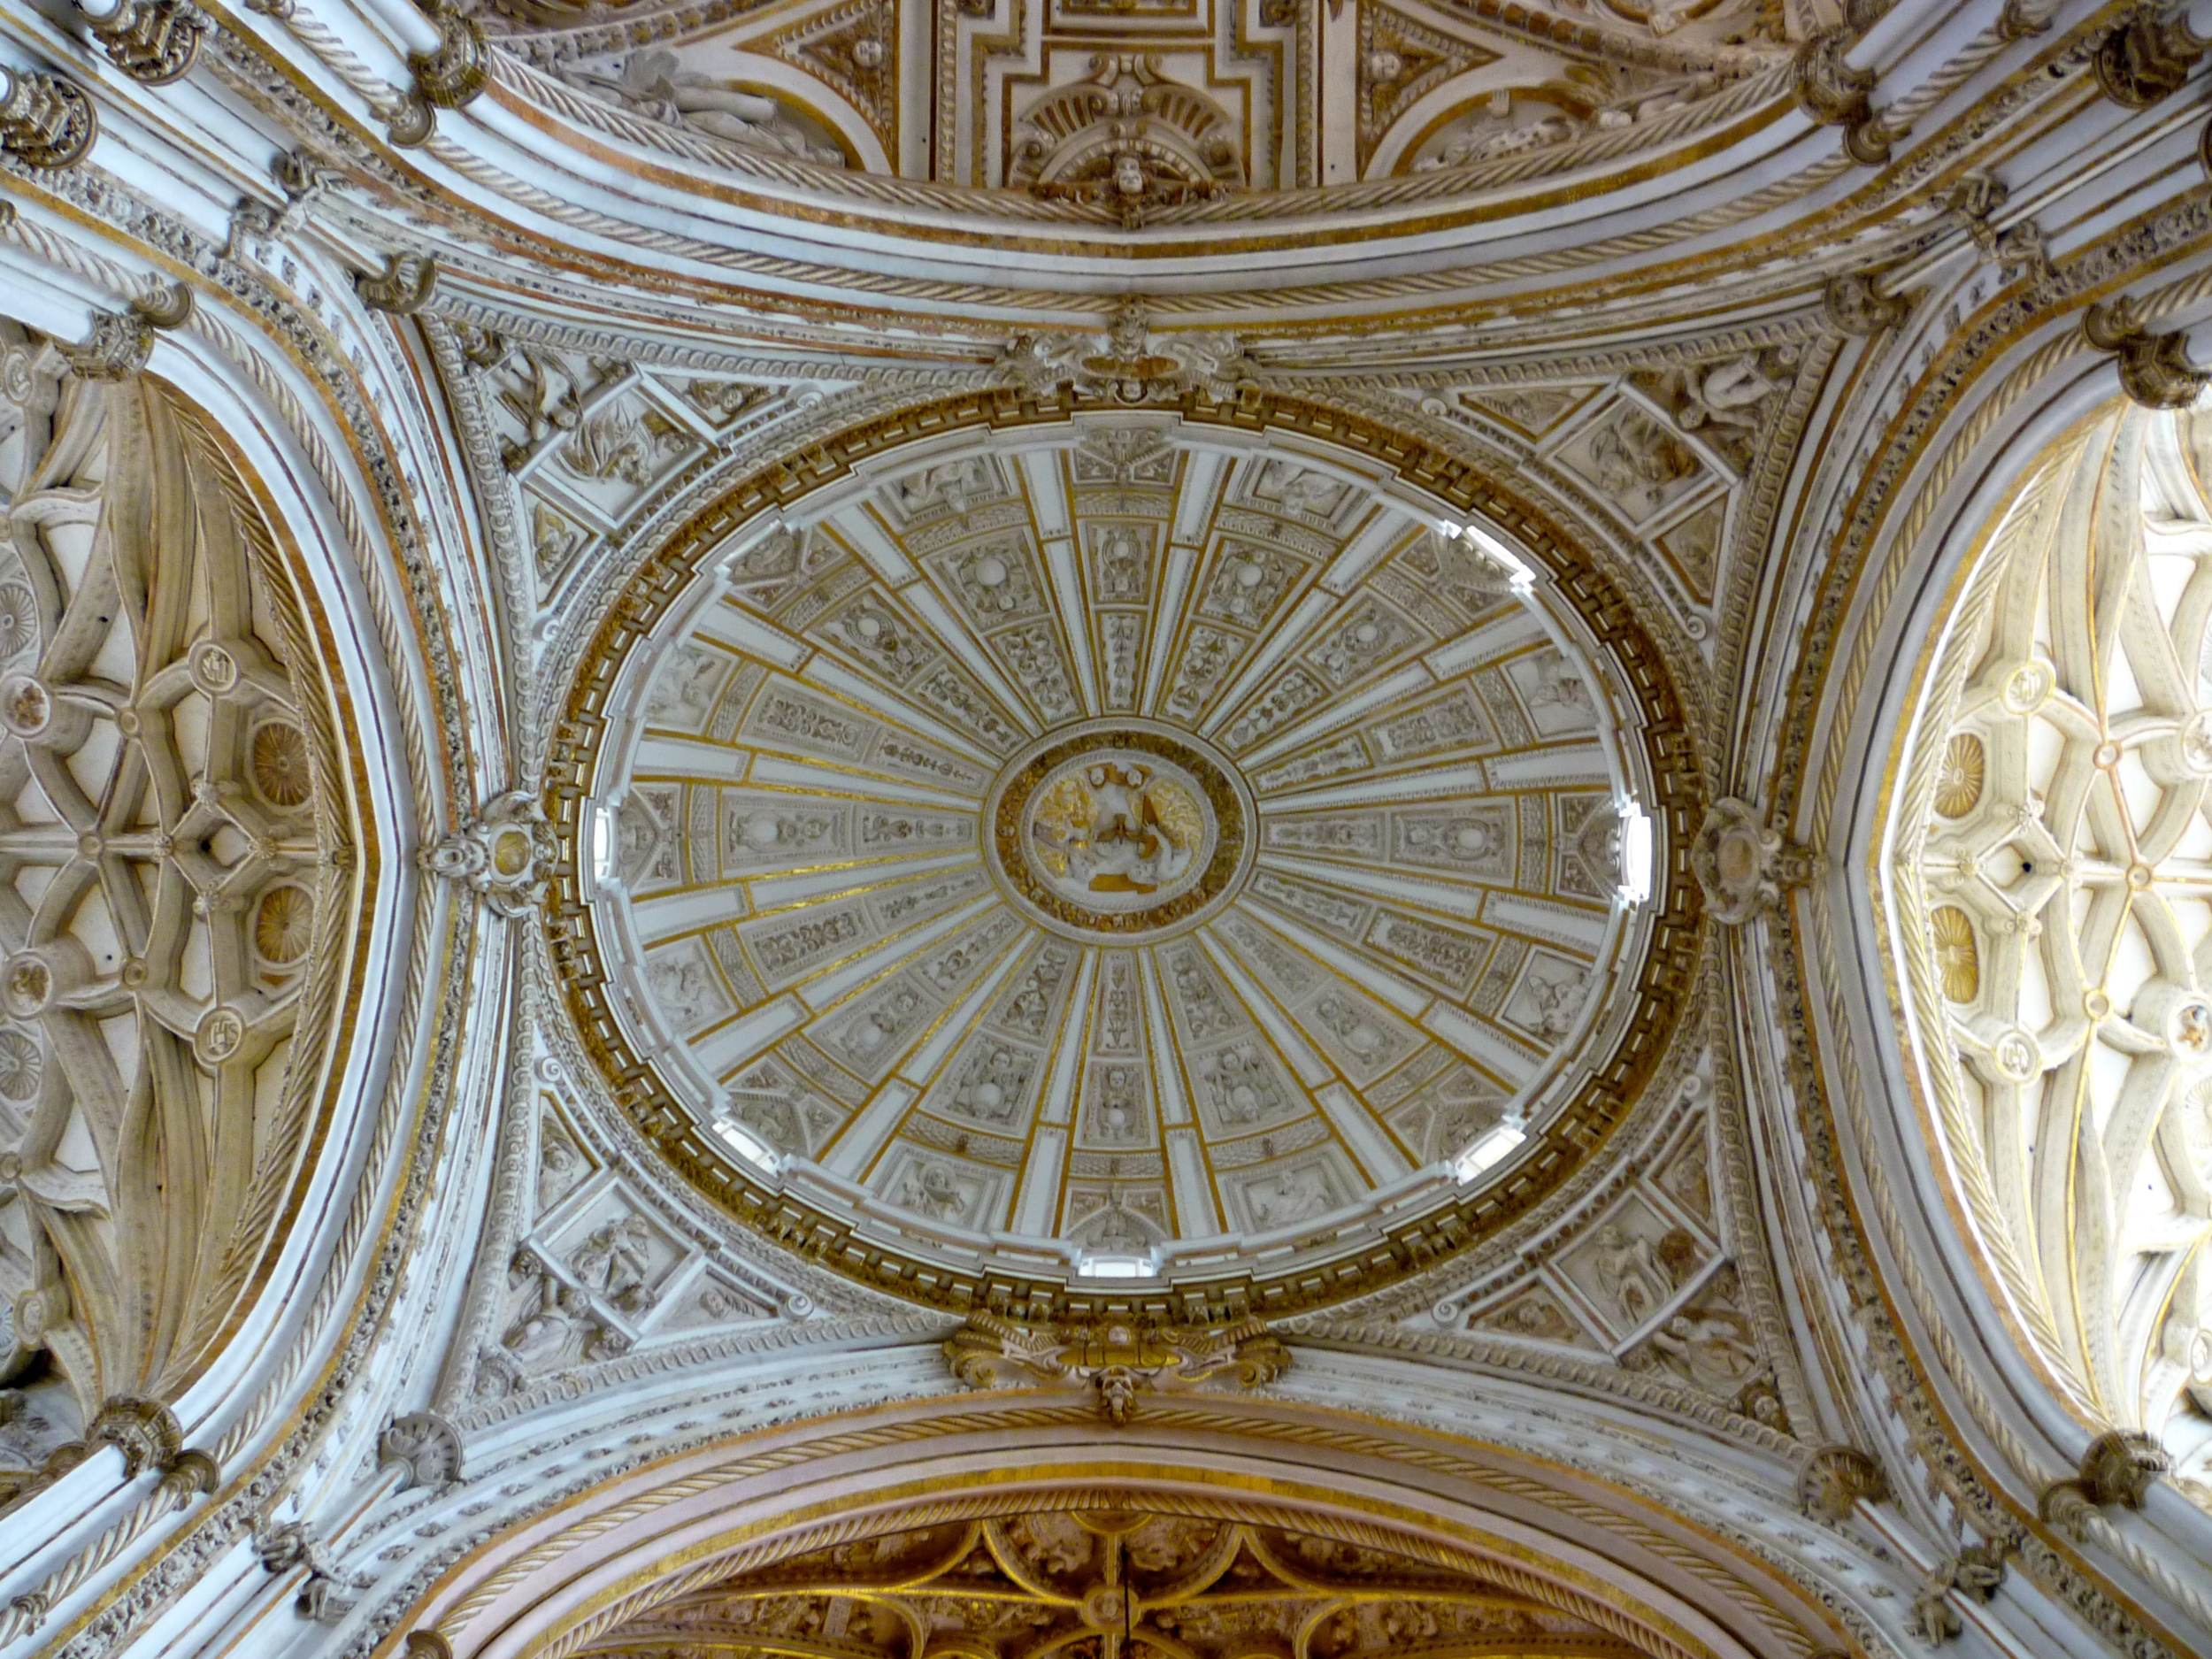 Looking up at the dome of the church section